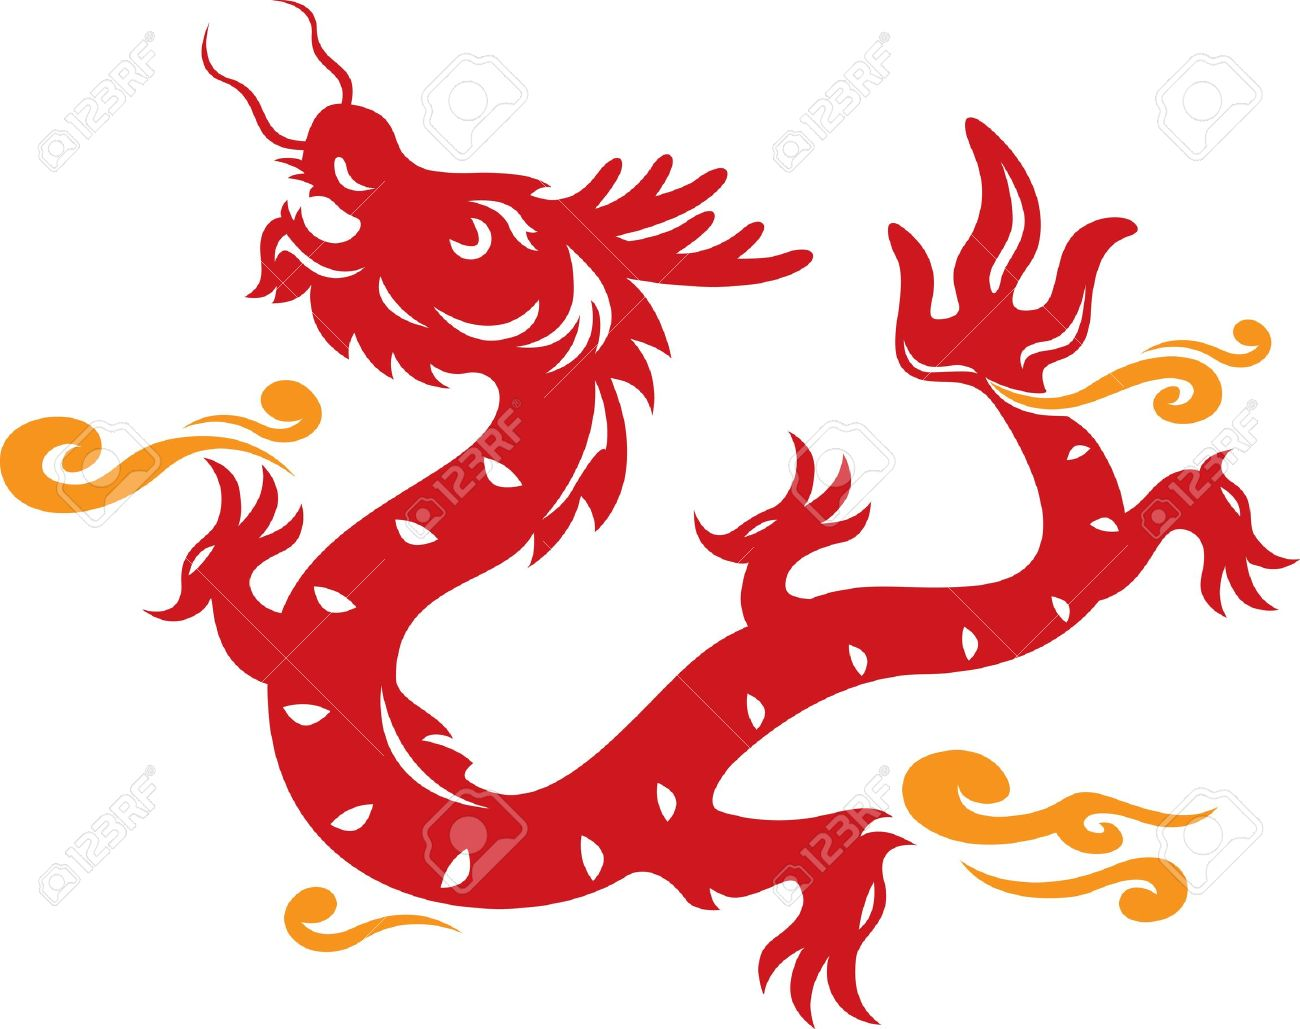 Chinesedragon clipart